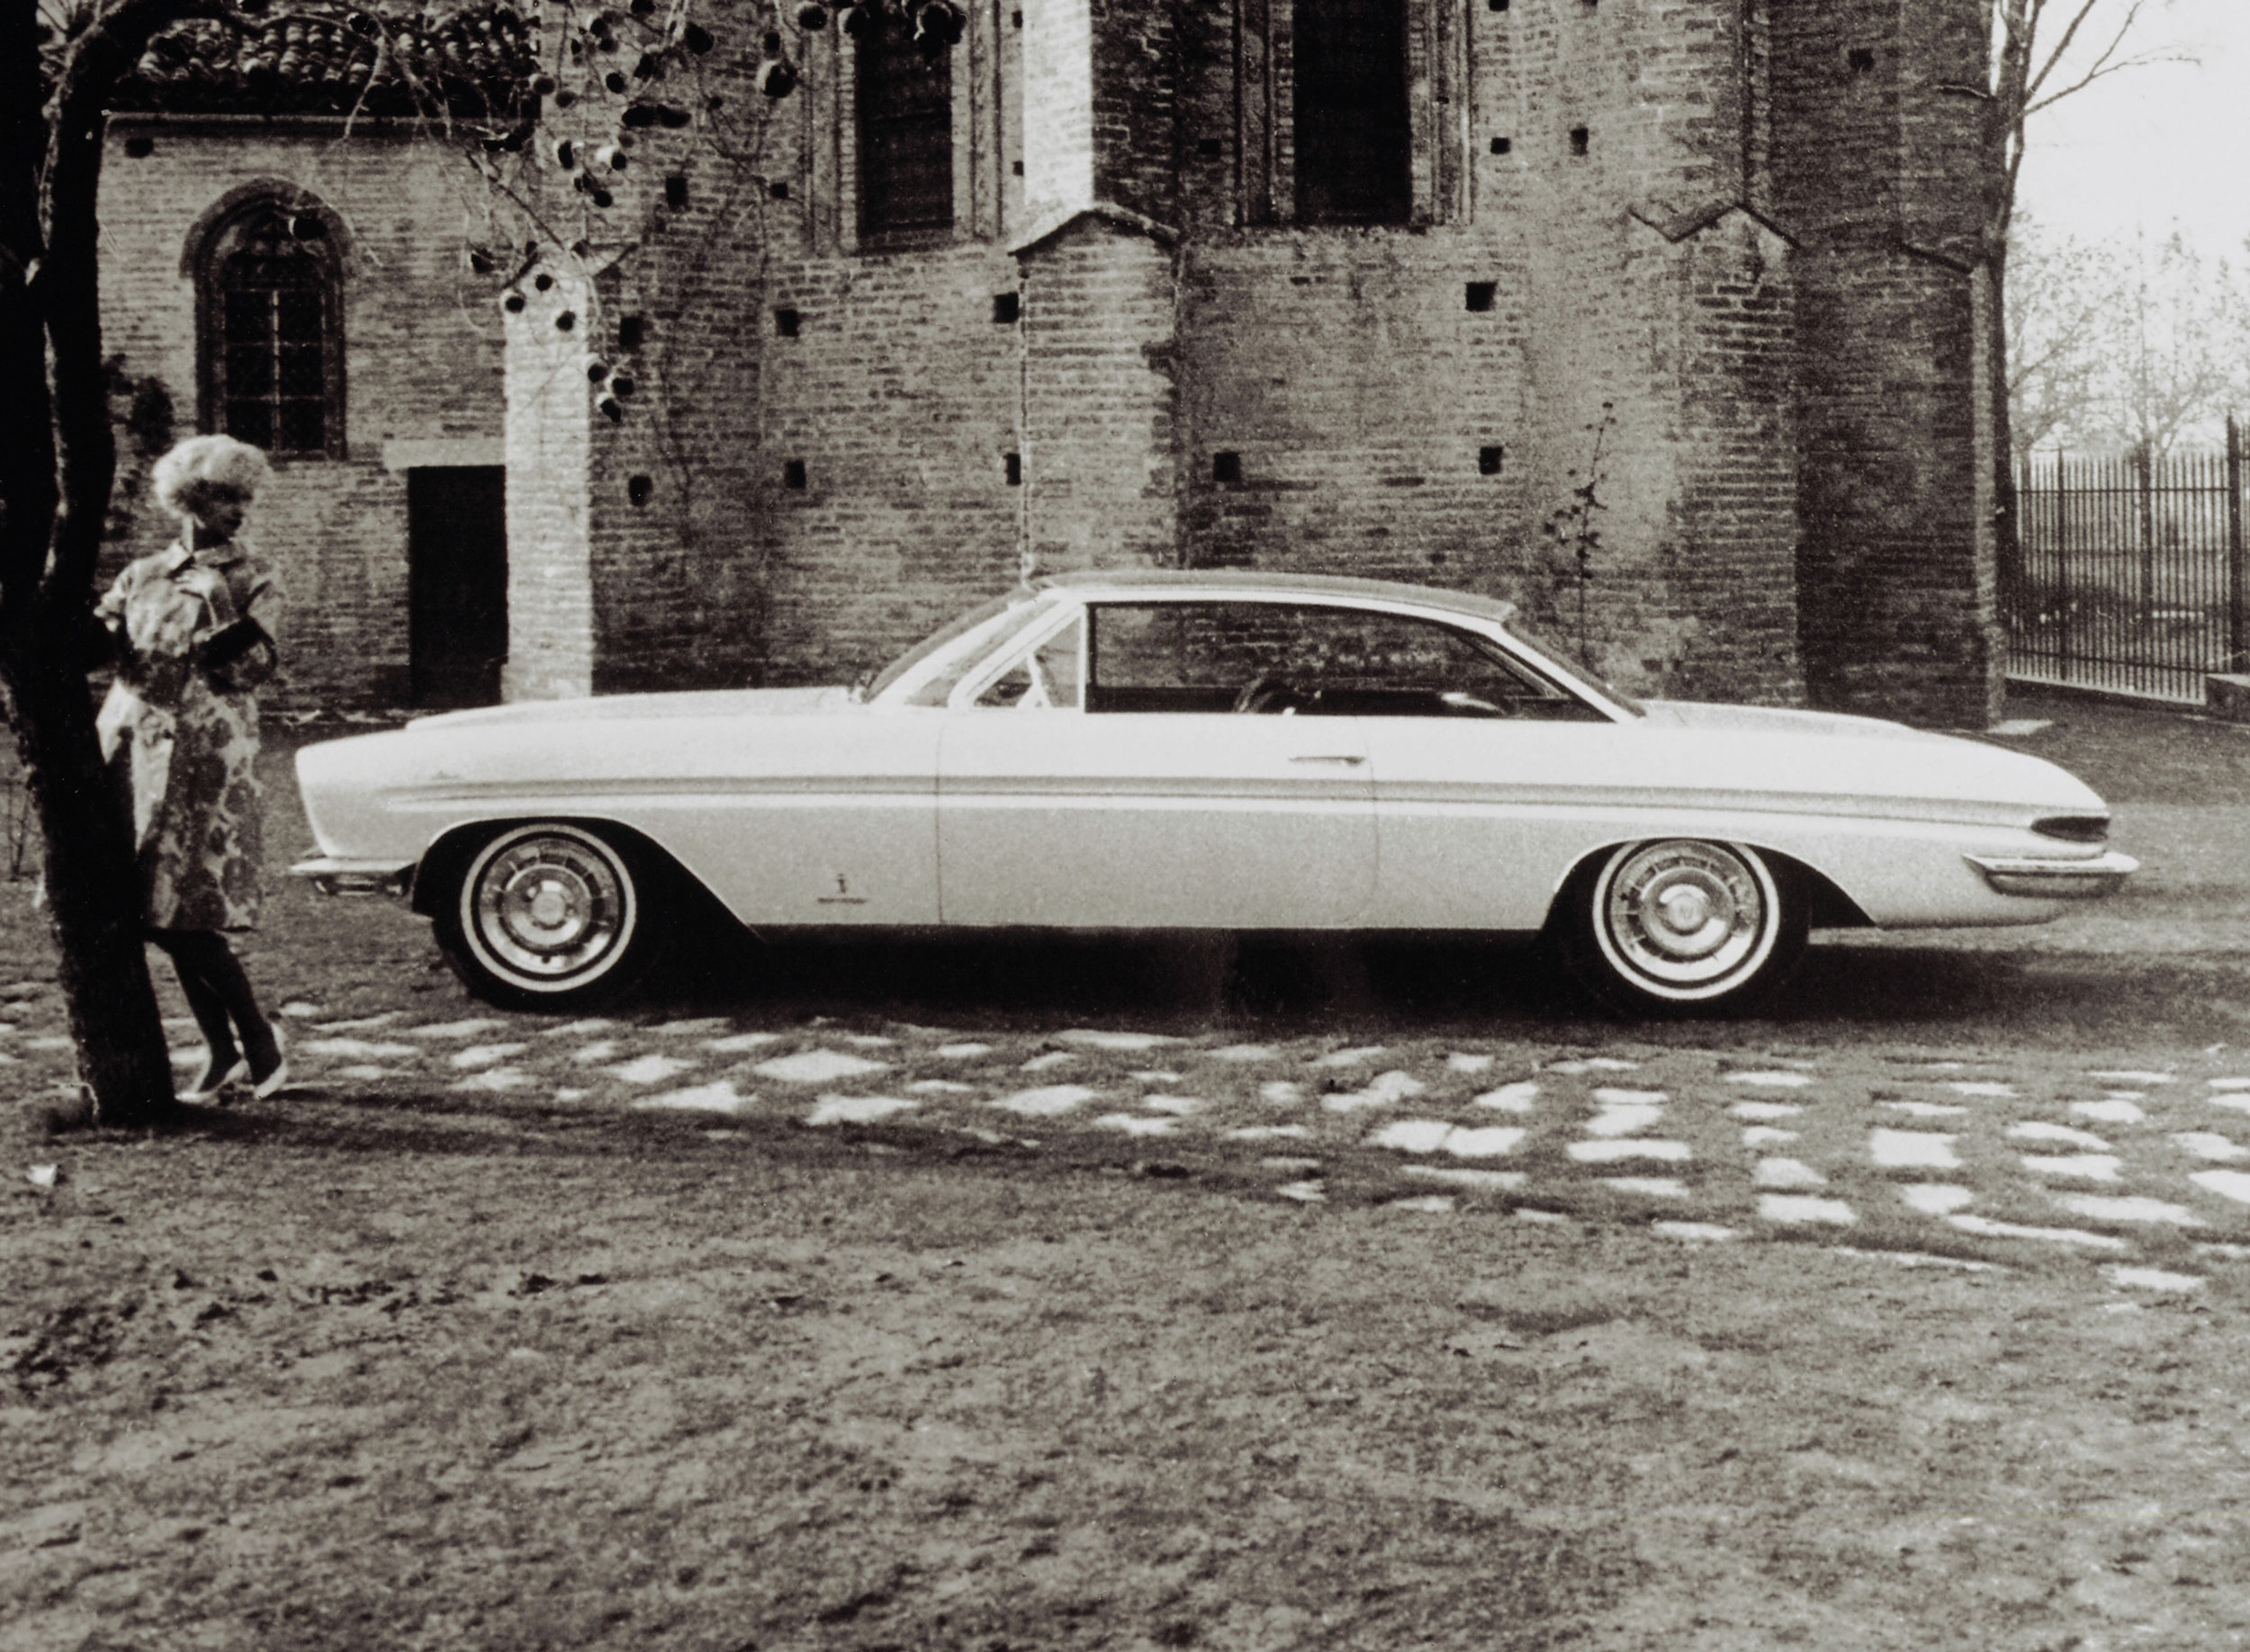 The 1961 Cadillac Jacqueline by Pininfarina. The car was built on a 1960 Eldorado Brougham chassis, then removed from that chassis and put on a tubular structure. It was built in honor of Jacqueline Bouvier Kennedy. The golden two-door featured a brushed steel roof and no back seat.